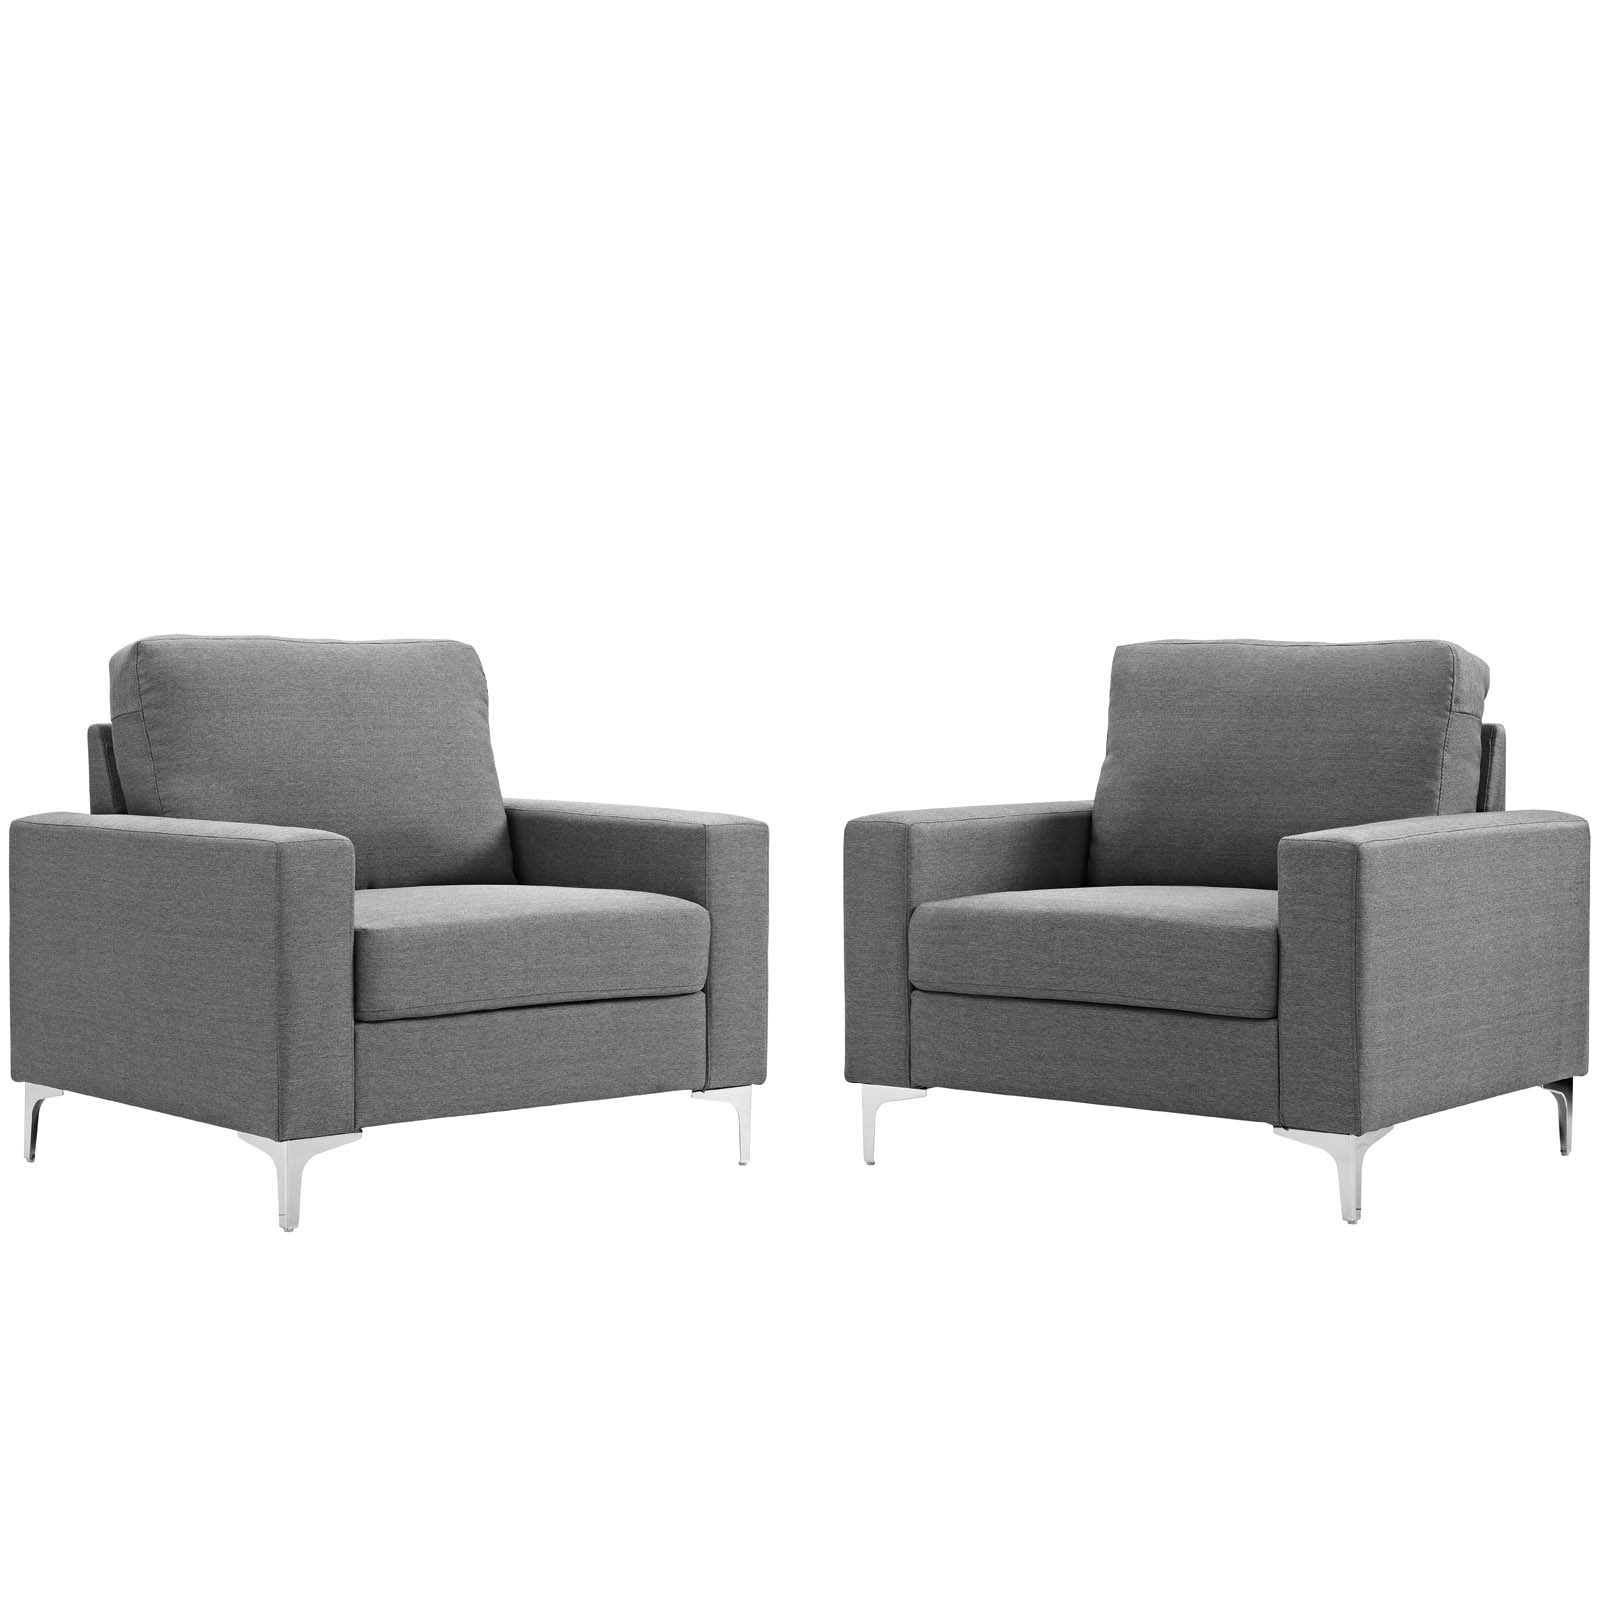 allure-2-piece-armchair-set---gray